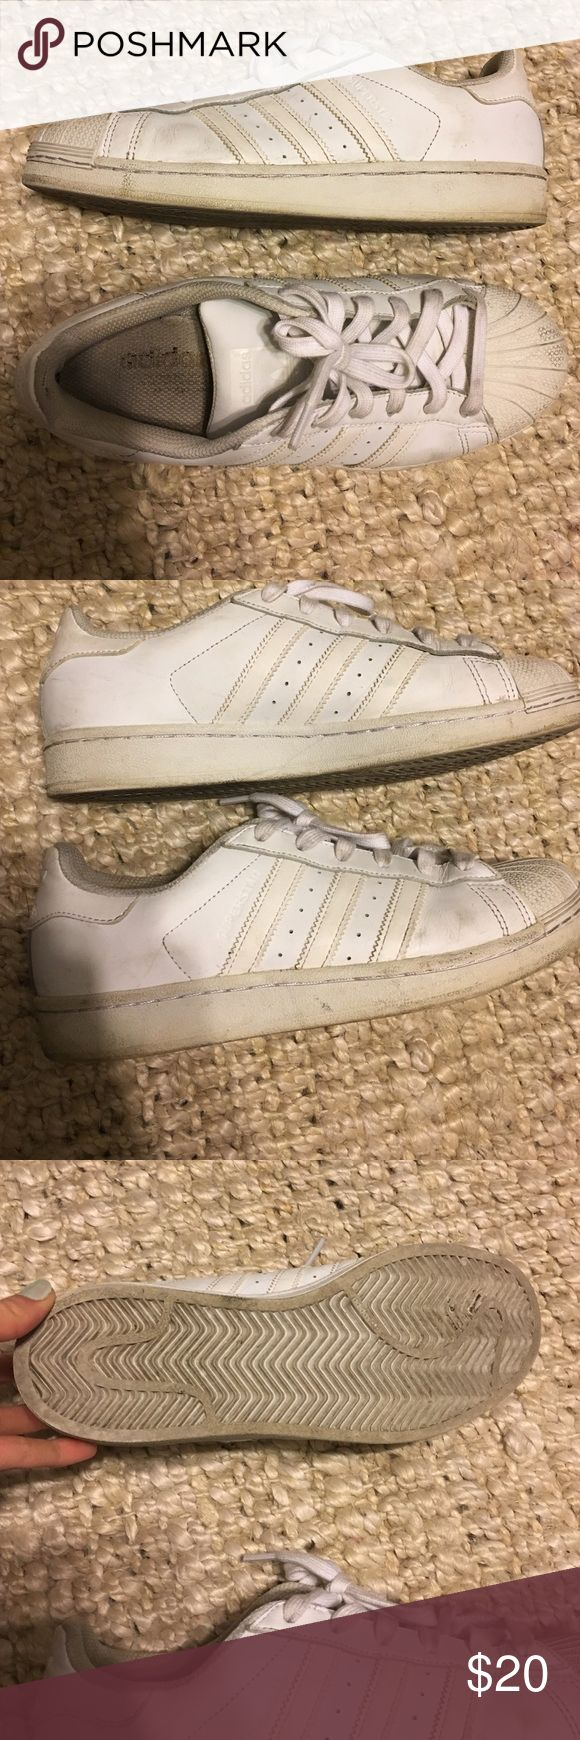 Adidas Superstars adidas used super stars ! can be cleaned with magic eraser ! Adidas Shoes Sneakers